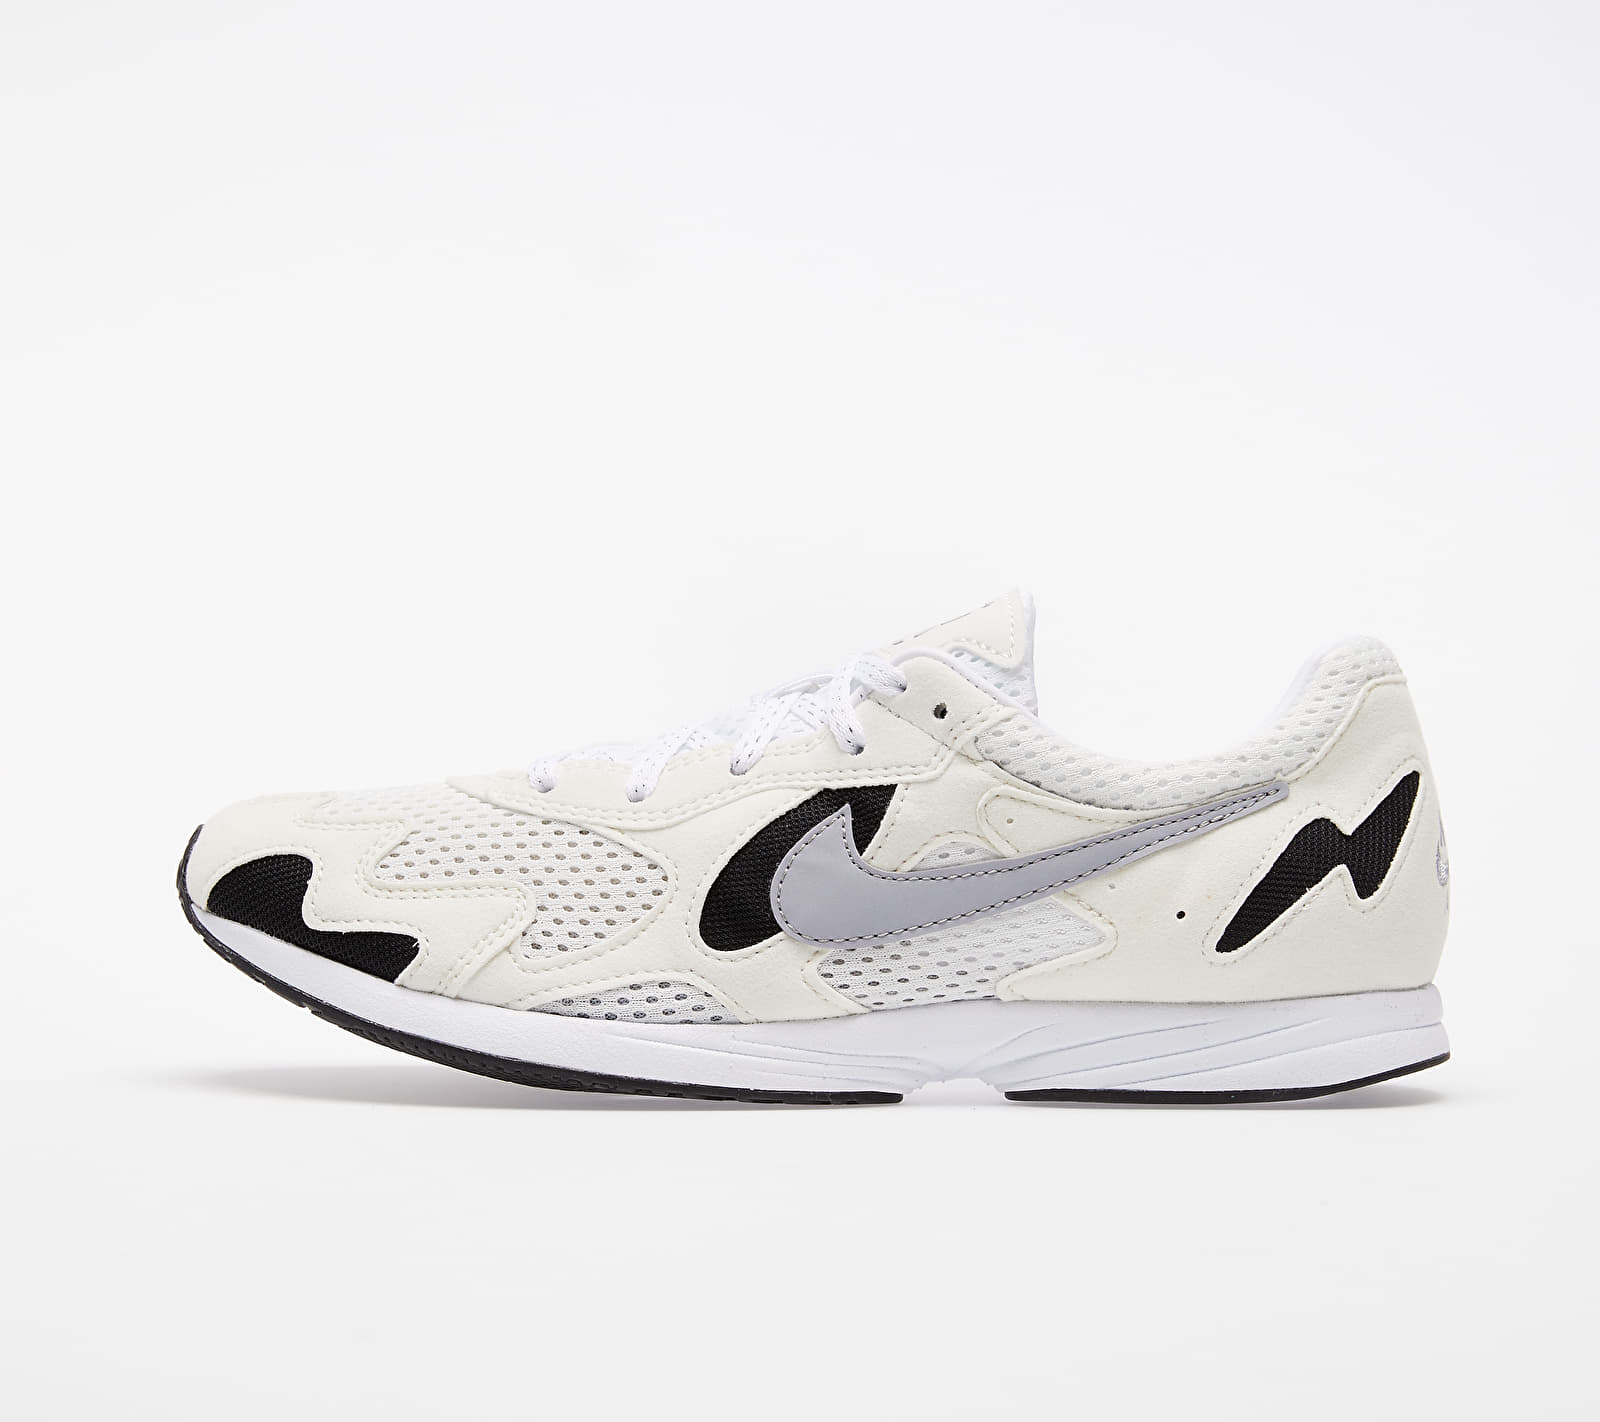 Nike Air Streak Lite Sail/ Wolf Grey-Black-Summit White EUR 44.5